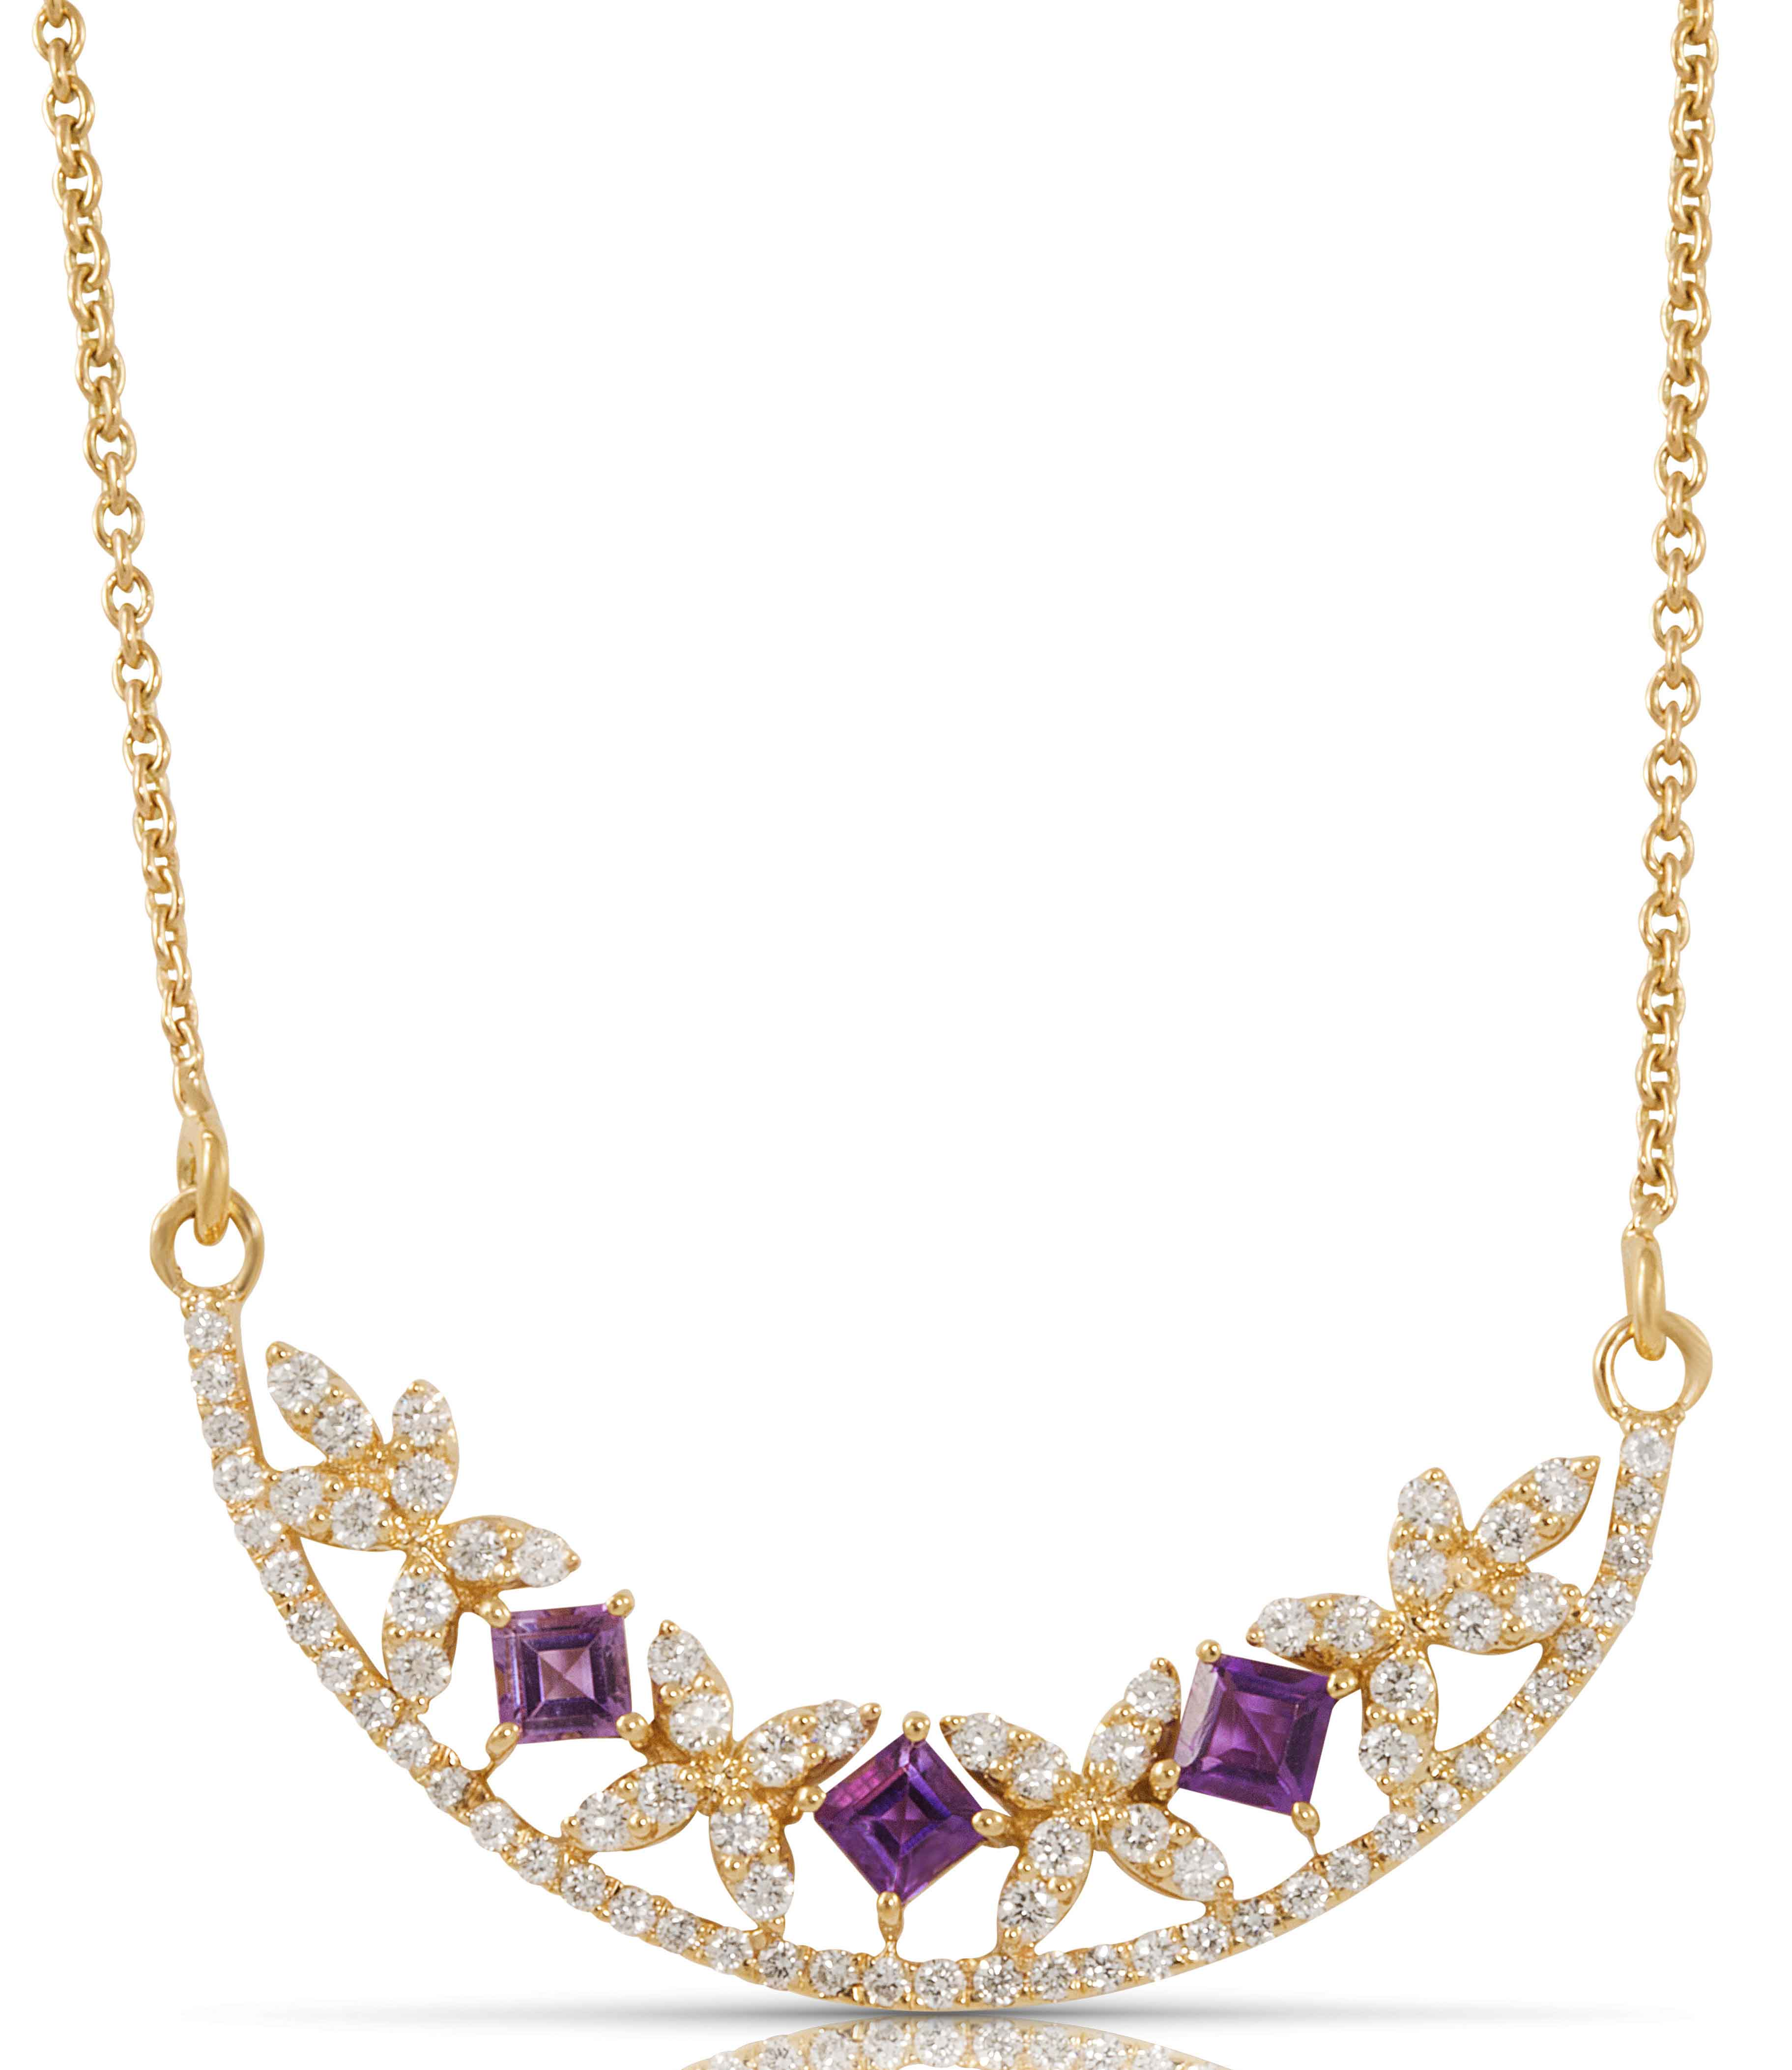 Raina necklace in yellow gold